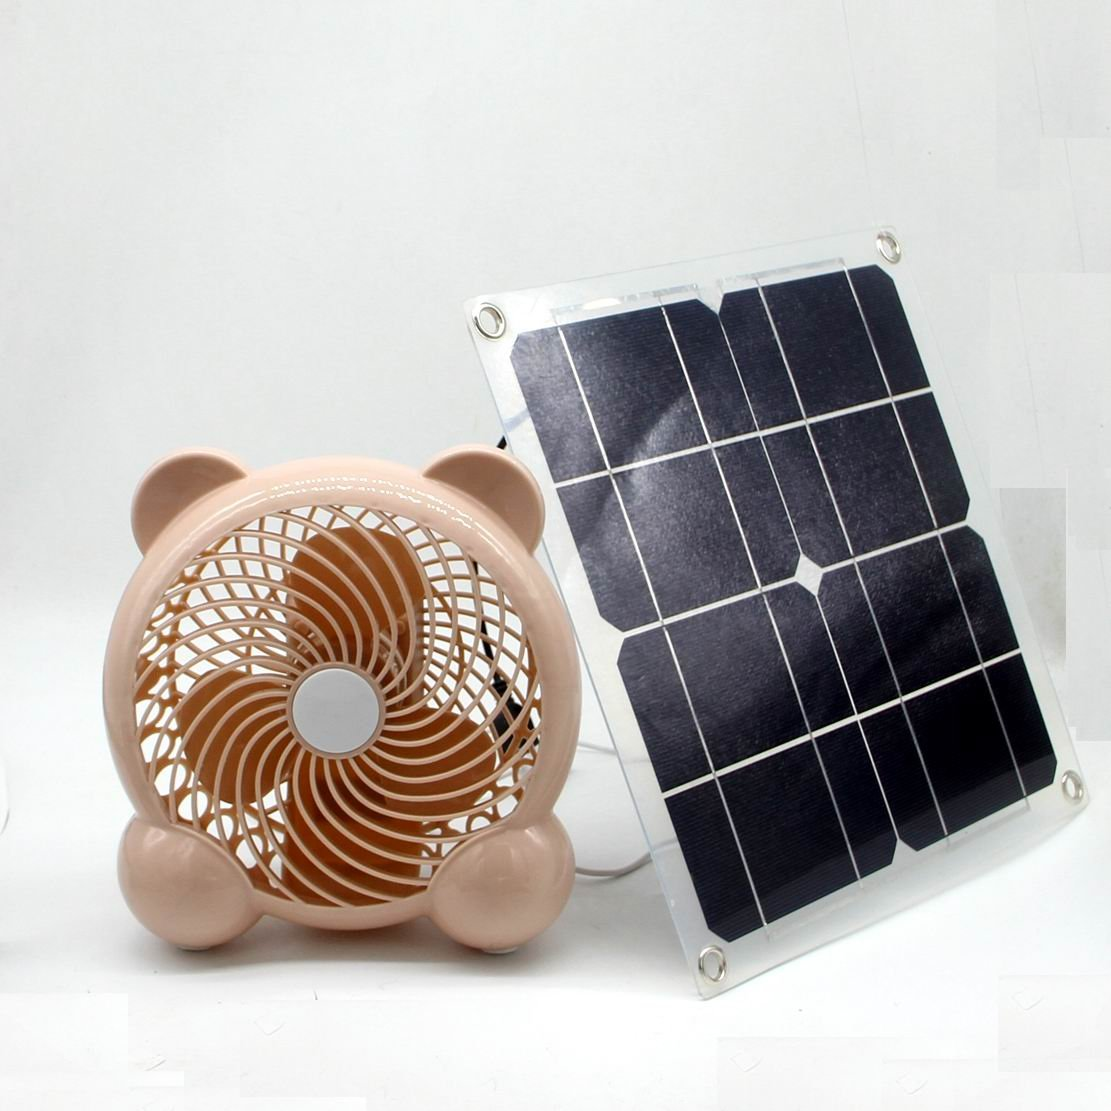 solar fan 10w 7inch Fan Powered Outdoor Home Cooling Care Garten Ventilation